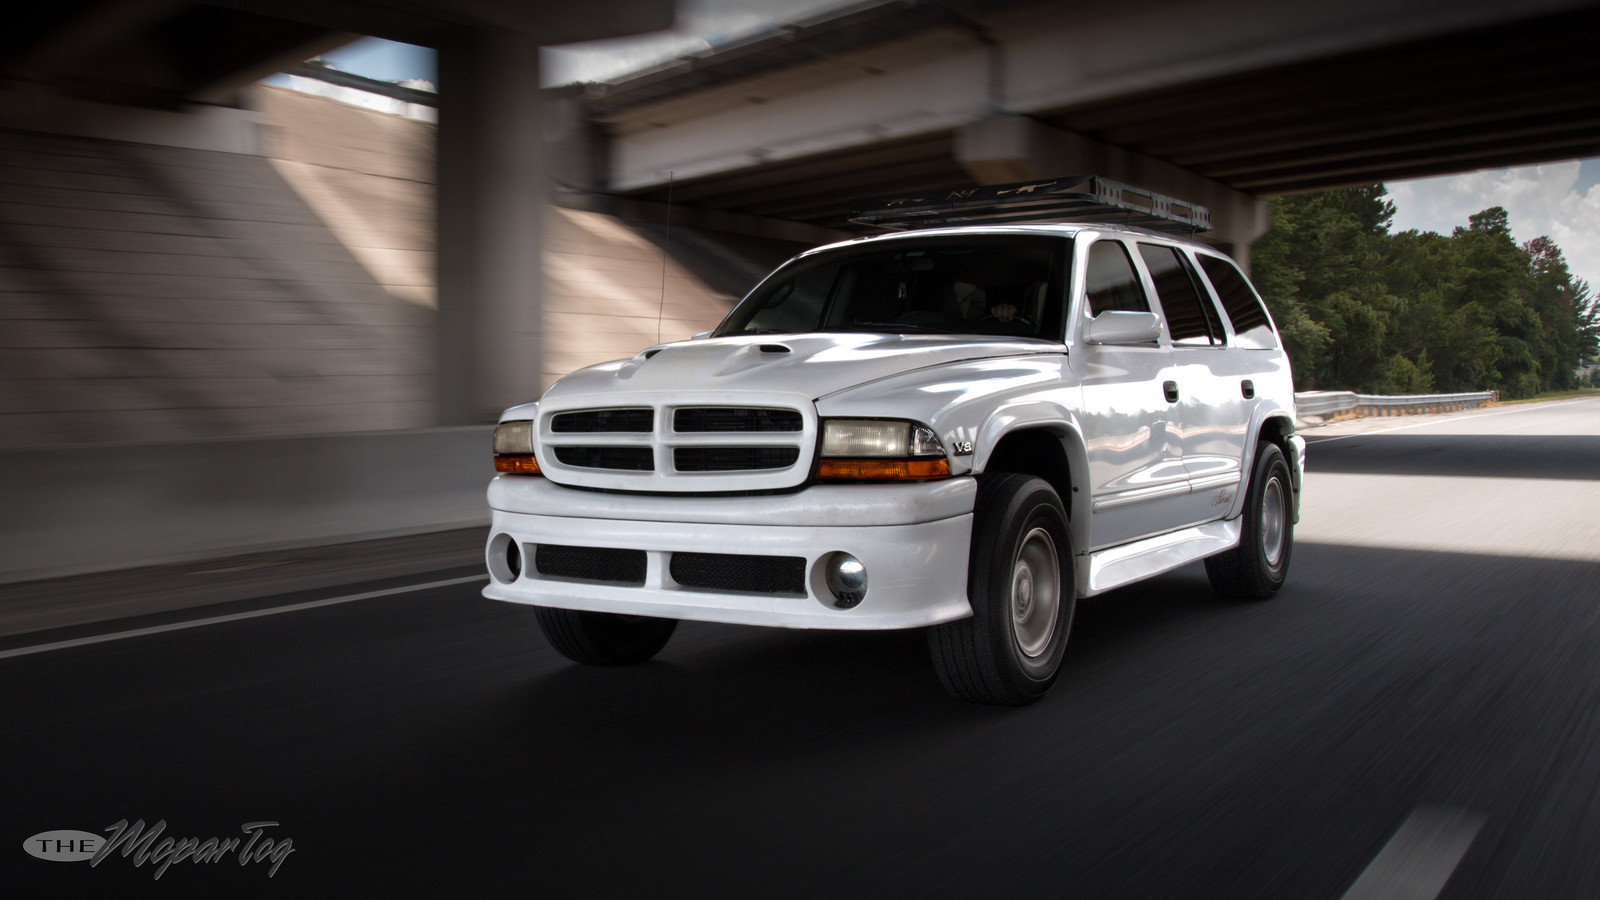 White 1998 Dodge Durango Super Pursuit